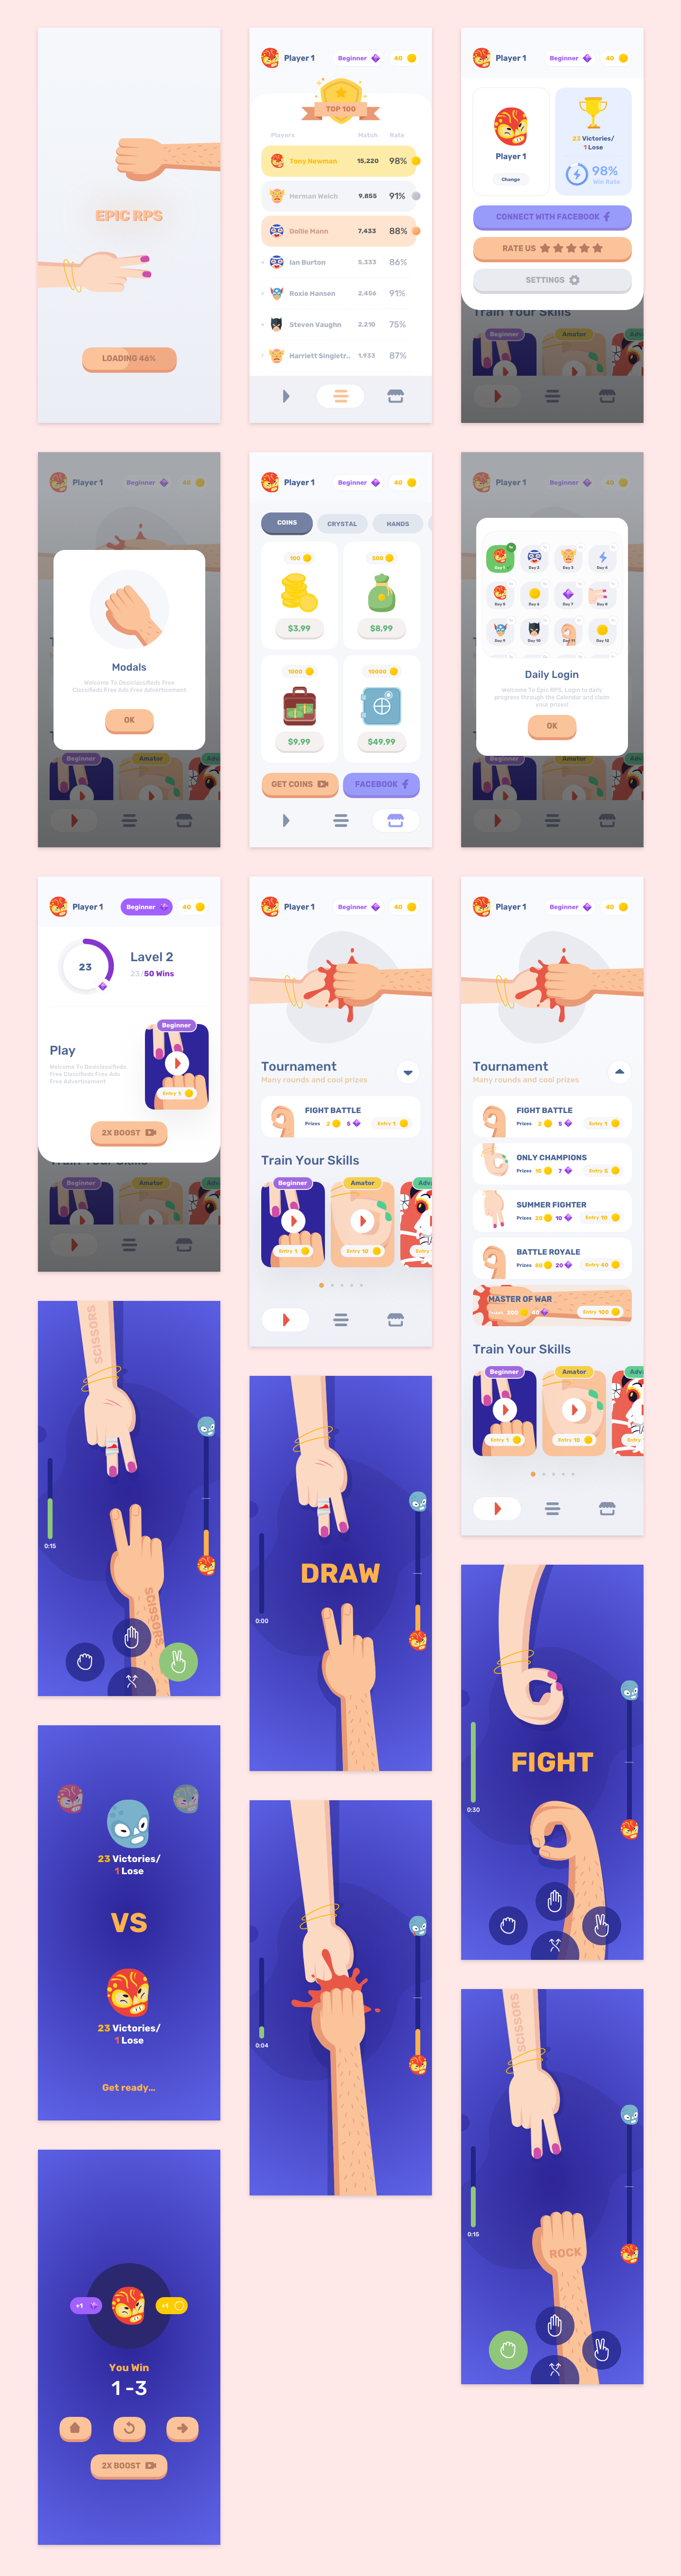 Epic Mobile Game UI Kit for Sketch - Fancy mobile game concept, 16+ screens for you to get started.